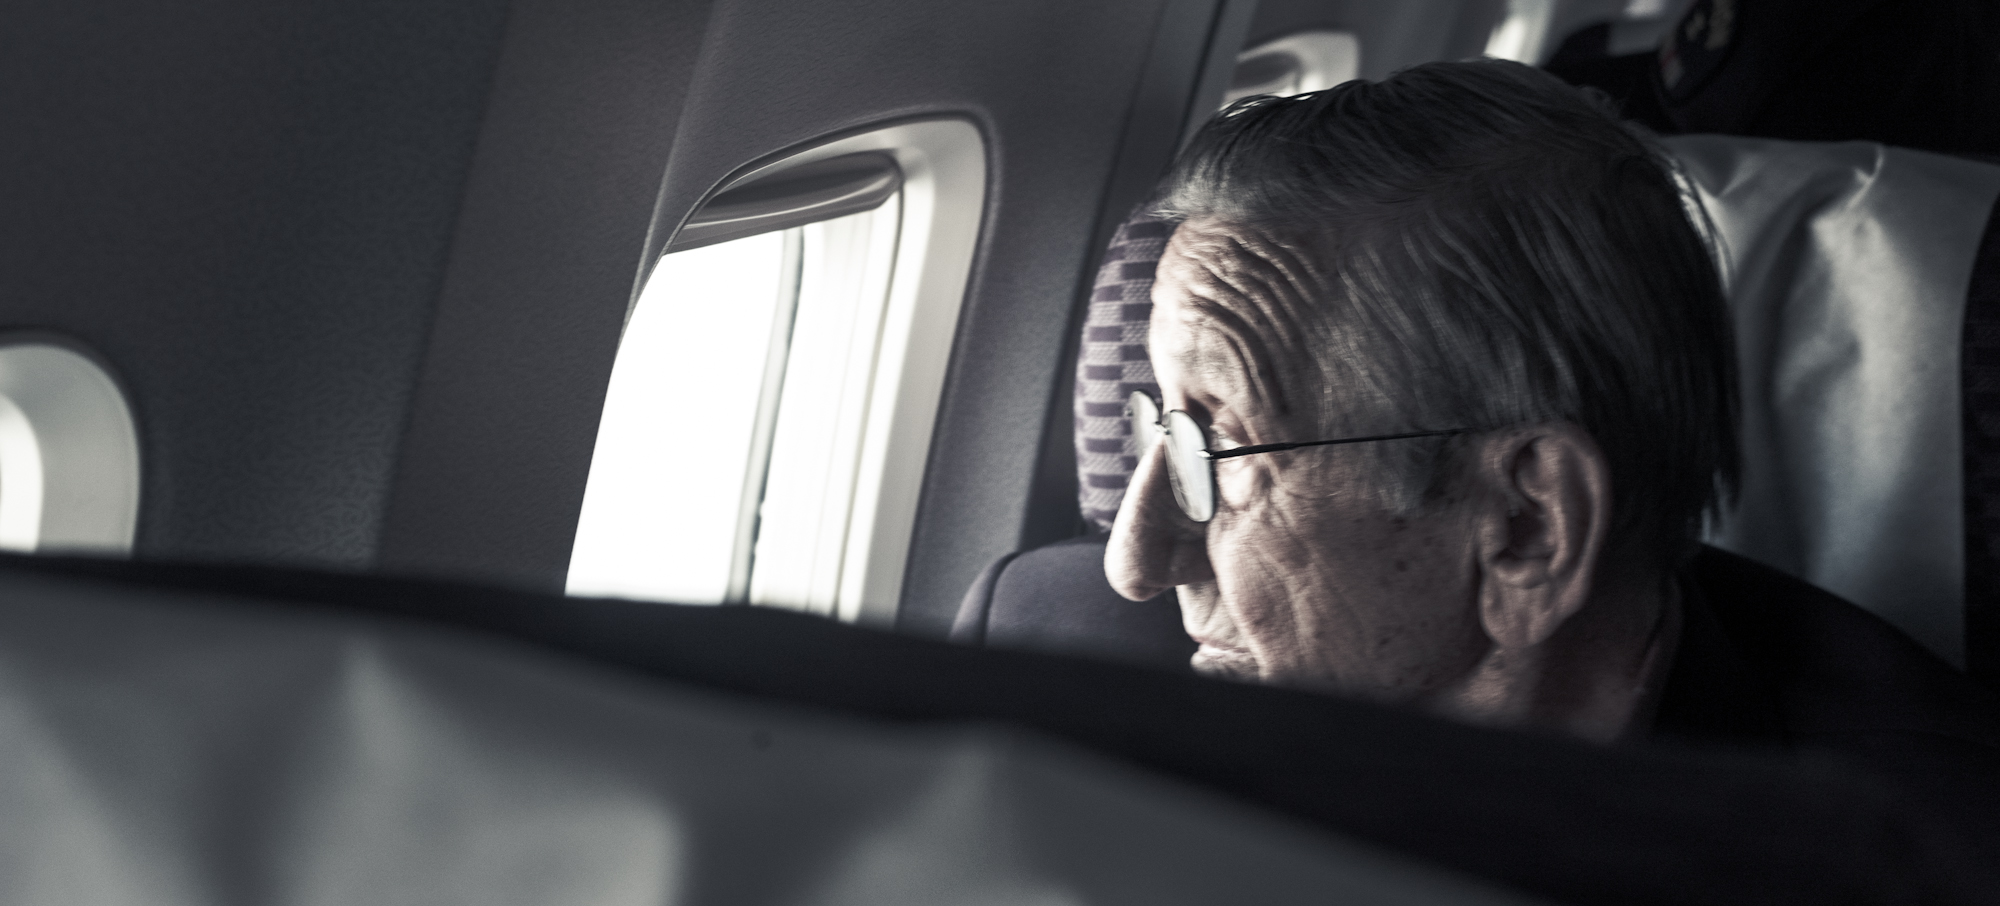 Mr. Pontisso looks out the window as we circle Iwo Jima, moments before landing.